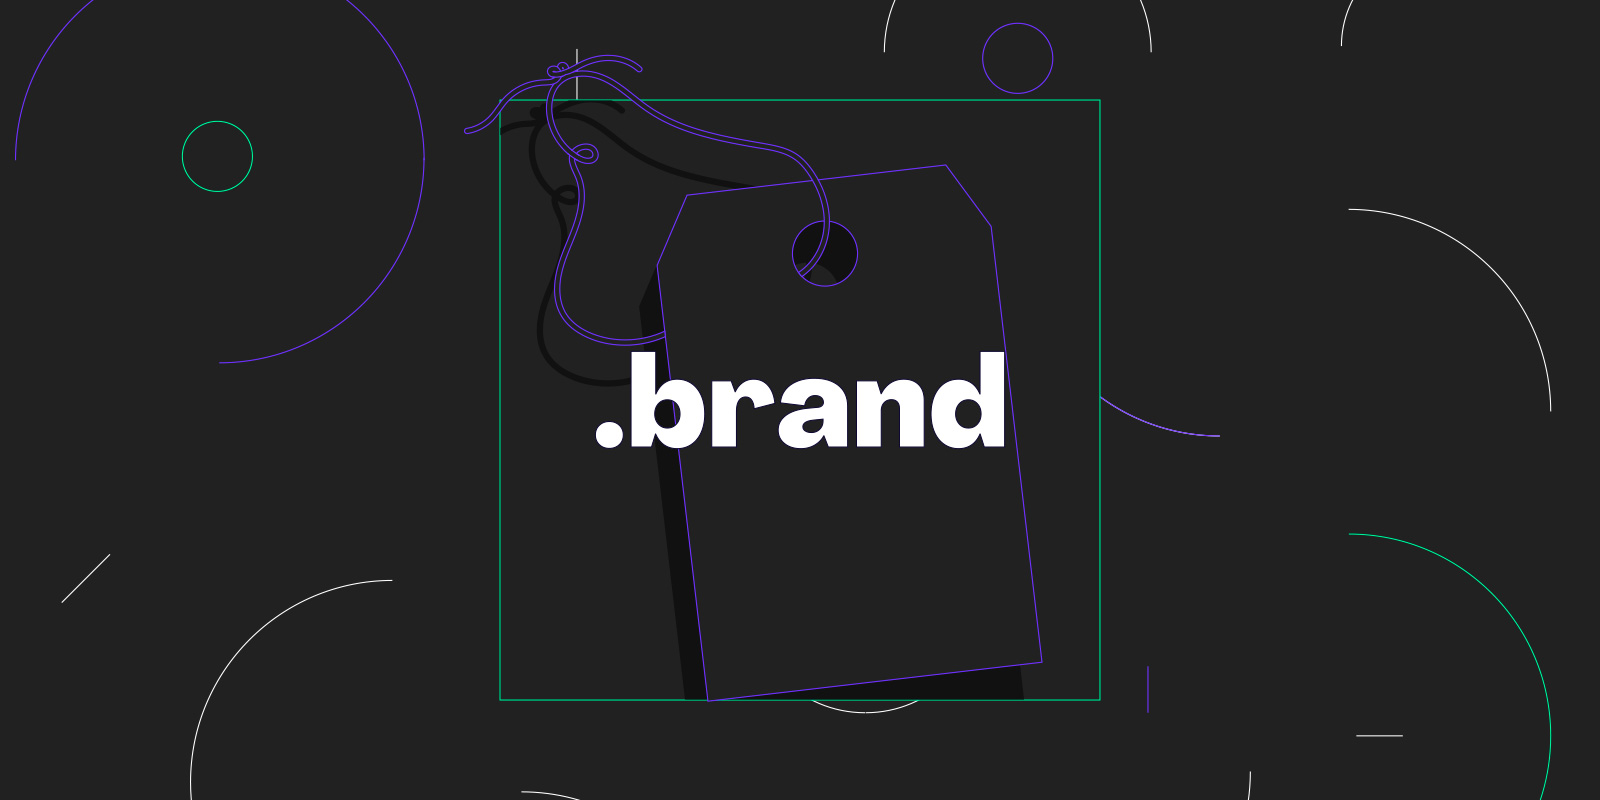 The key steps for launching your .brand